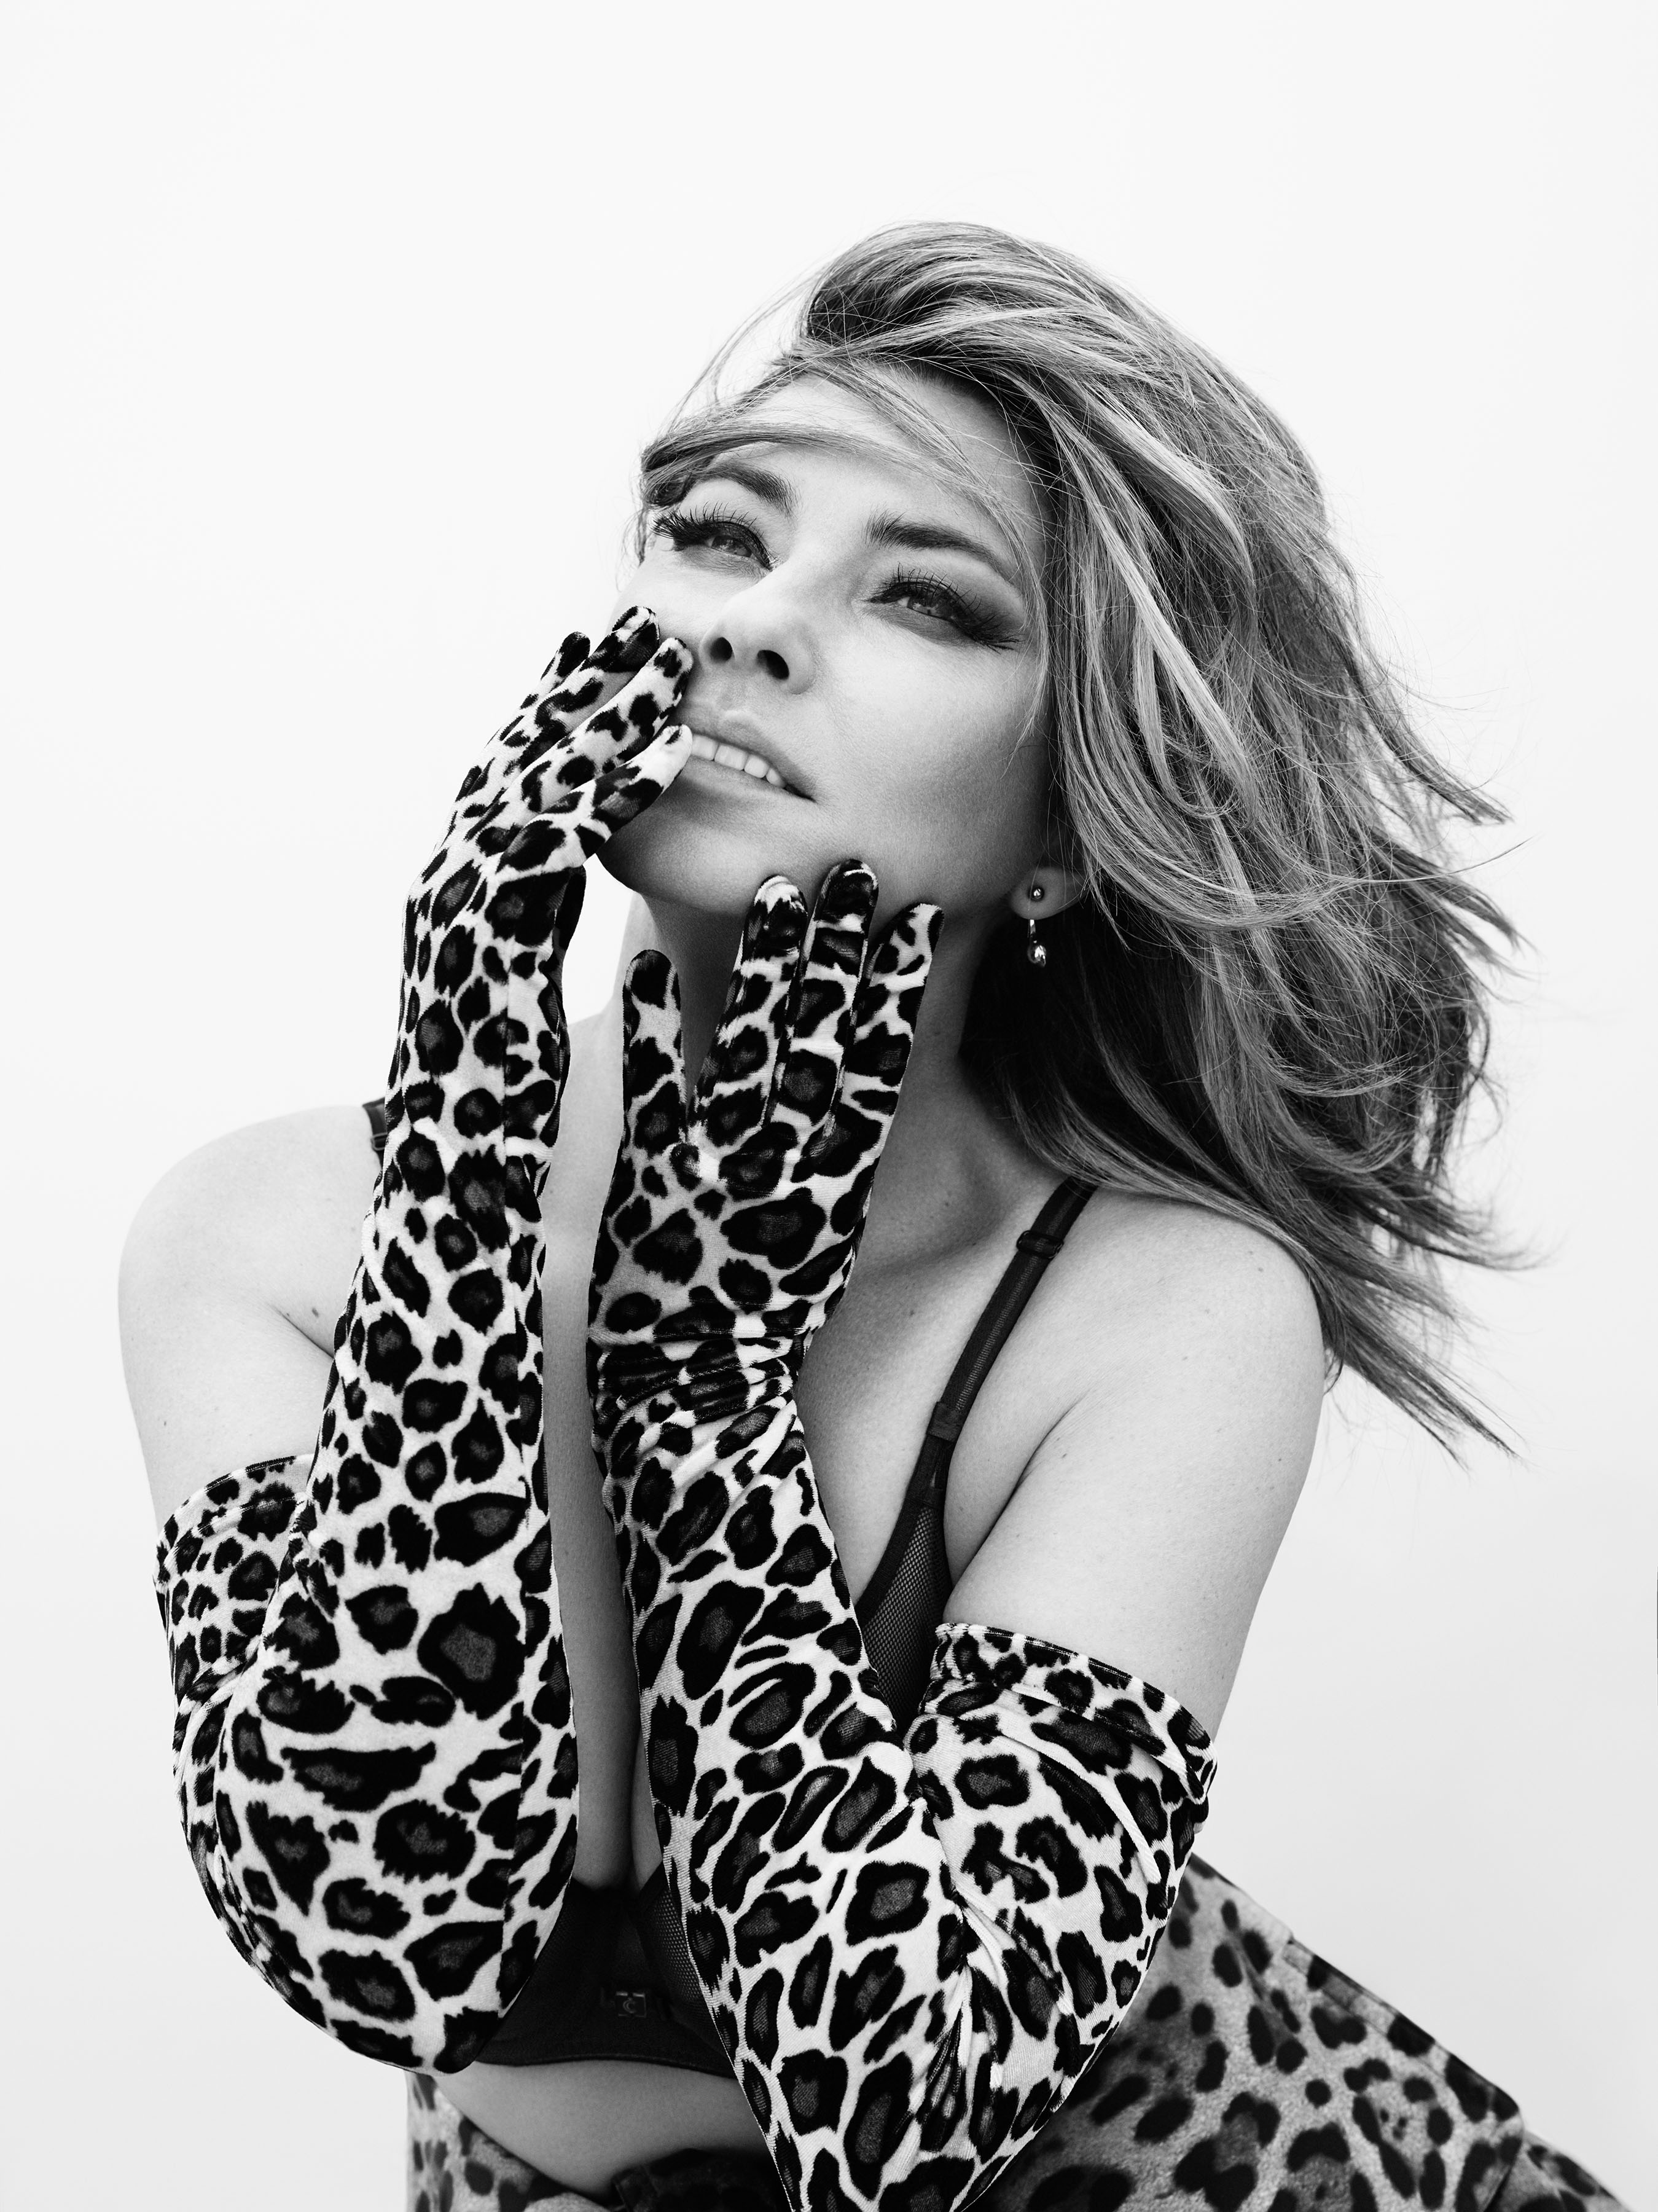 SHANIA TWAIN SERVES FANS ANOTHER TASTE FROM HER NEW ALBUM.